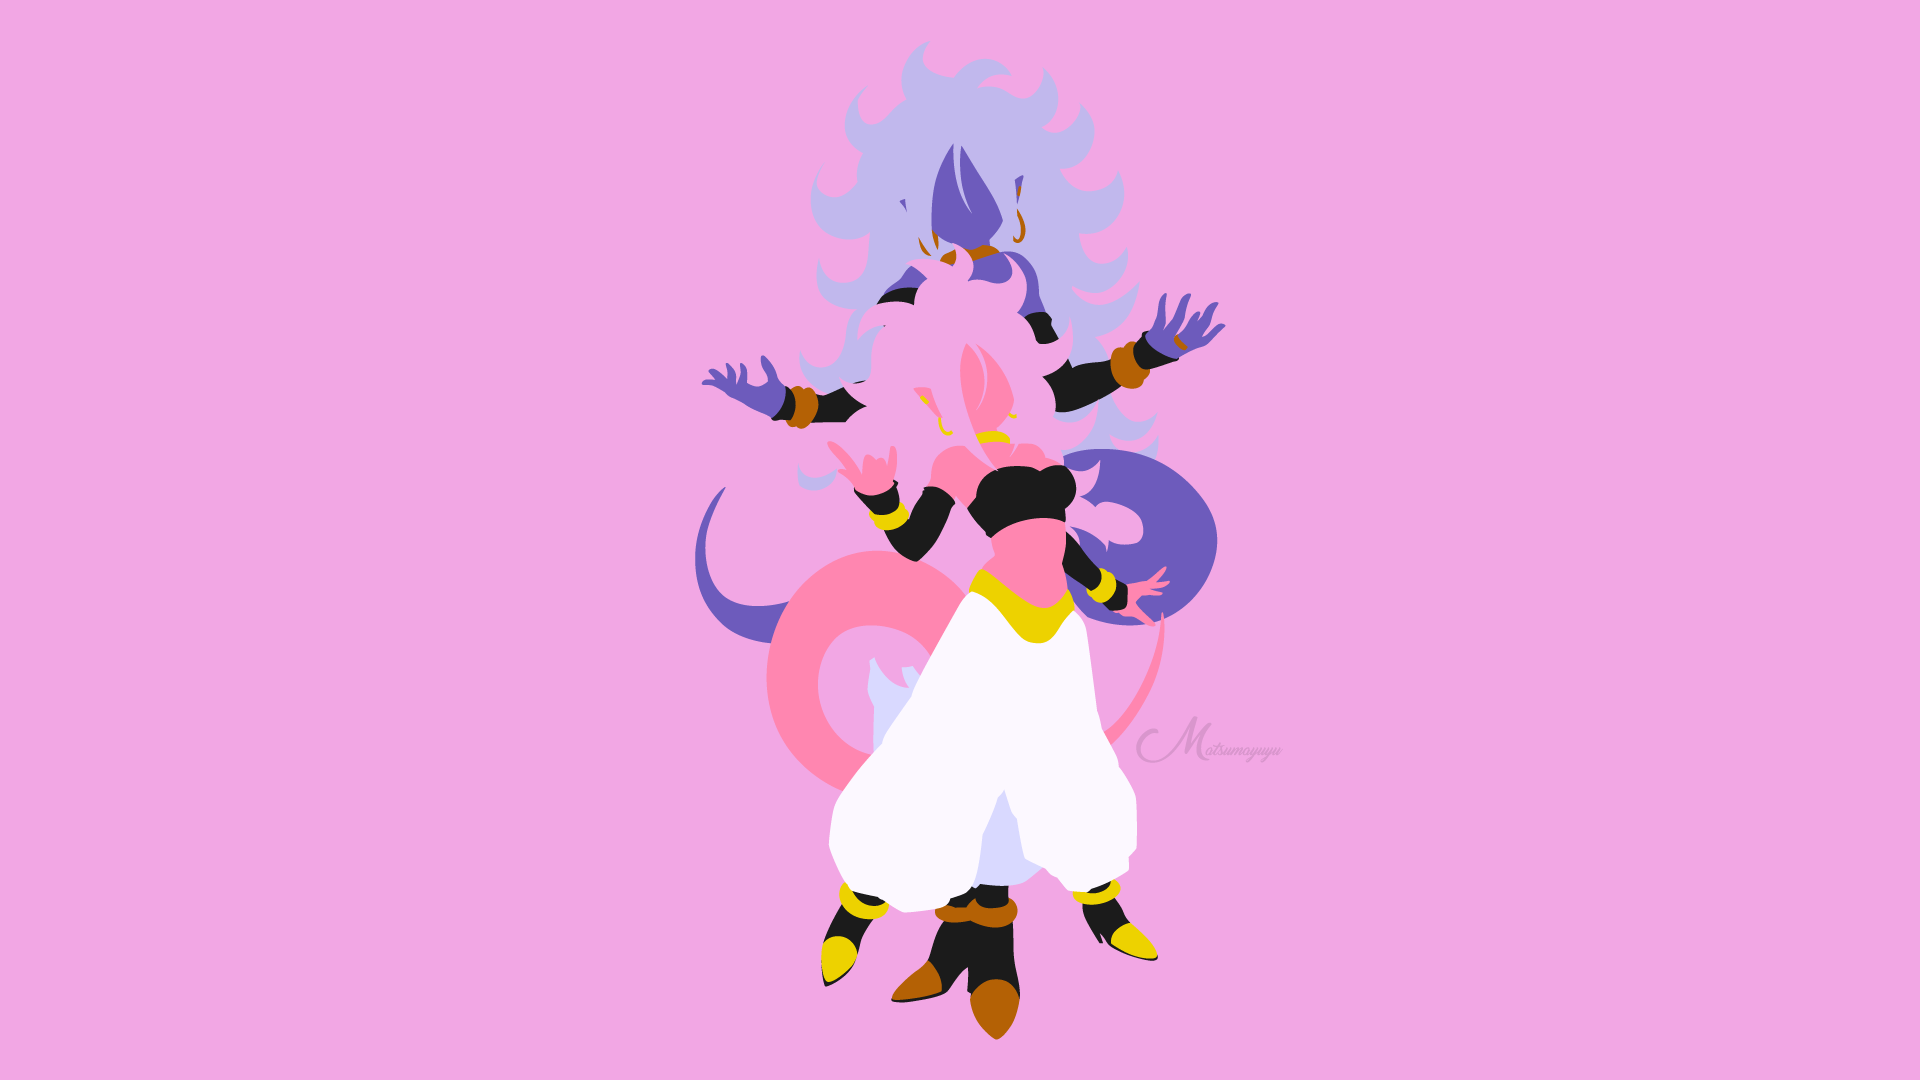 Majin Android 21 From Dragon Ball Fighterz By Matsumayu On Deviantart